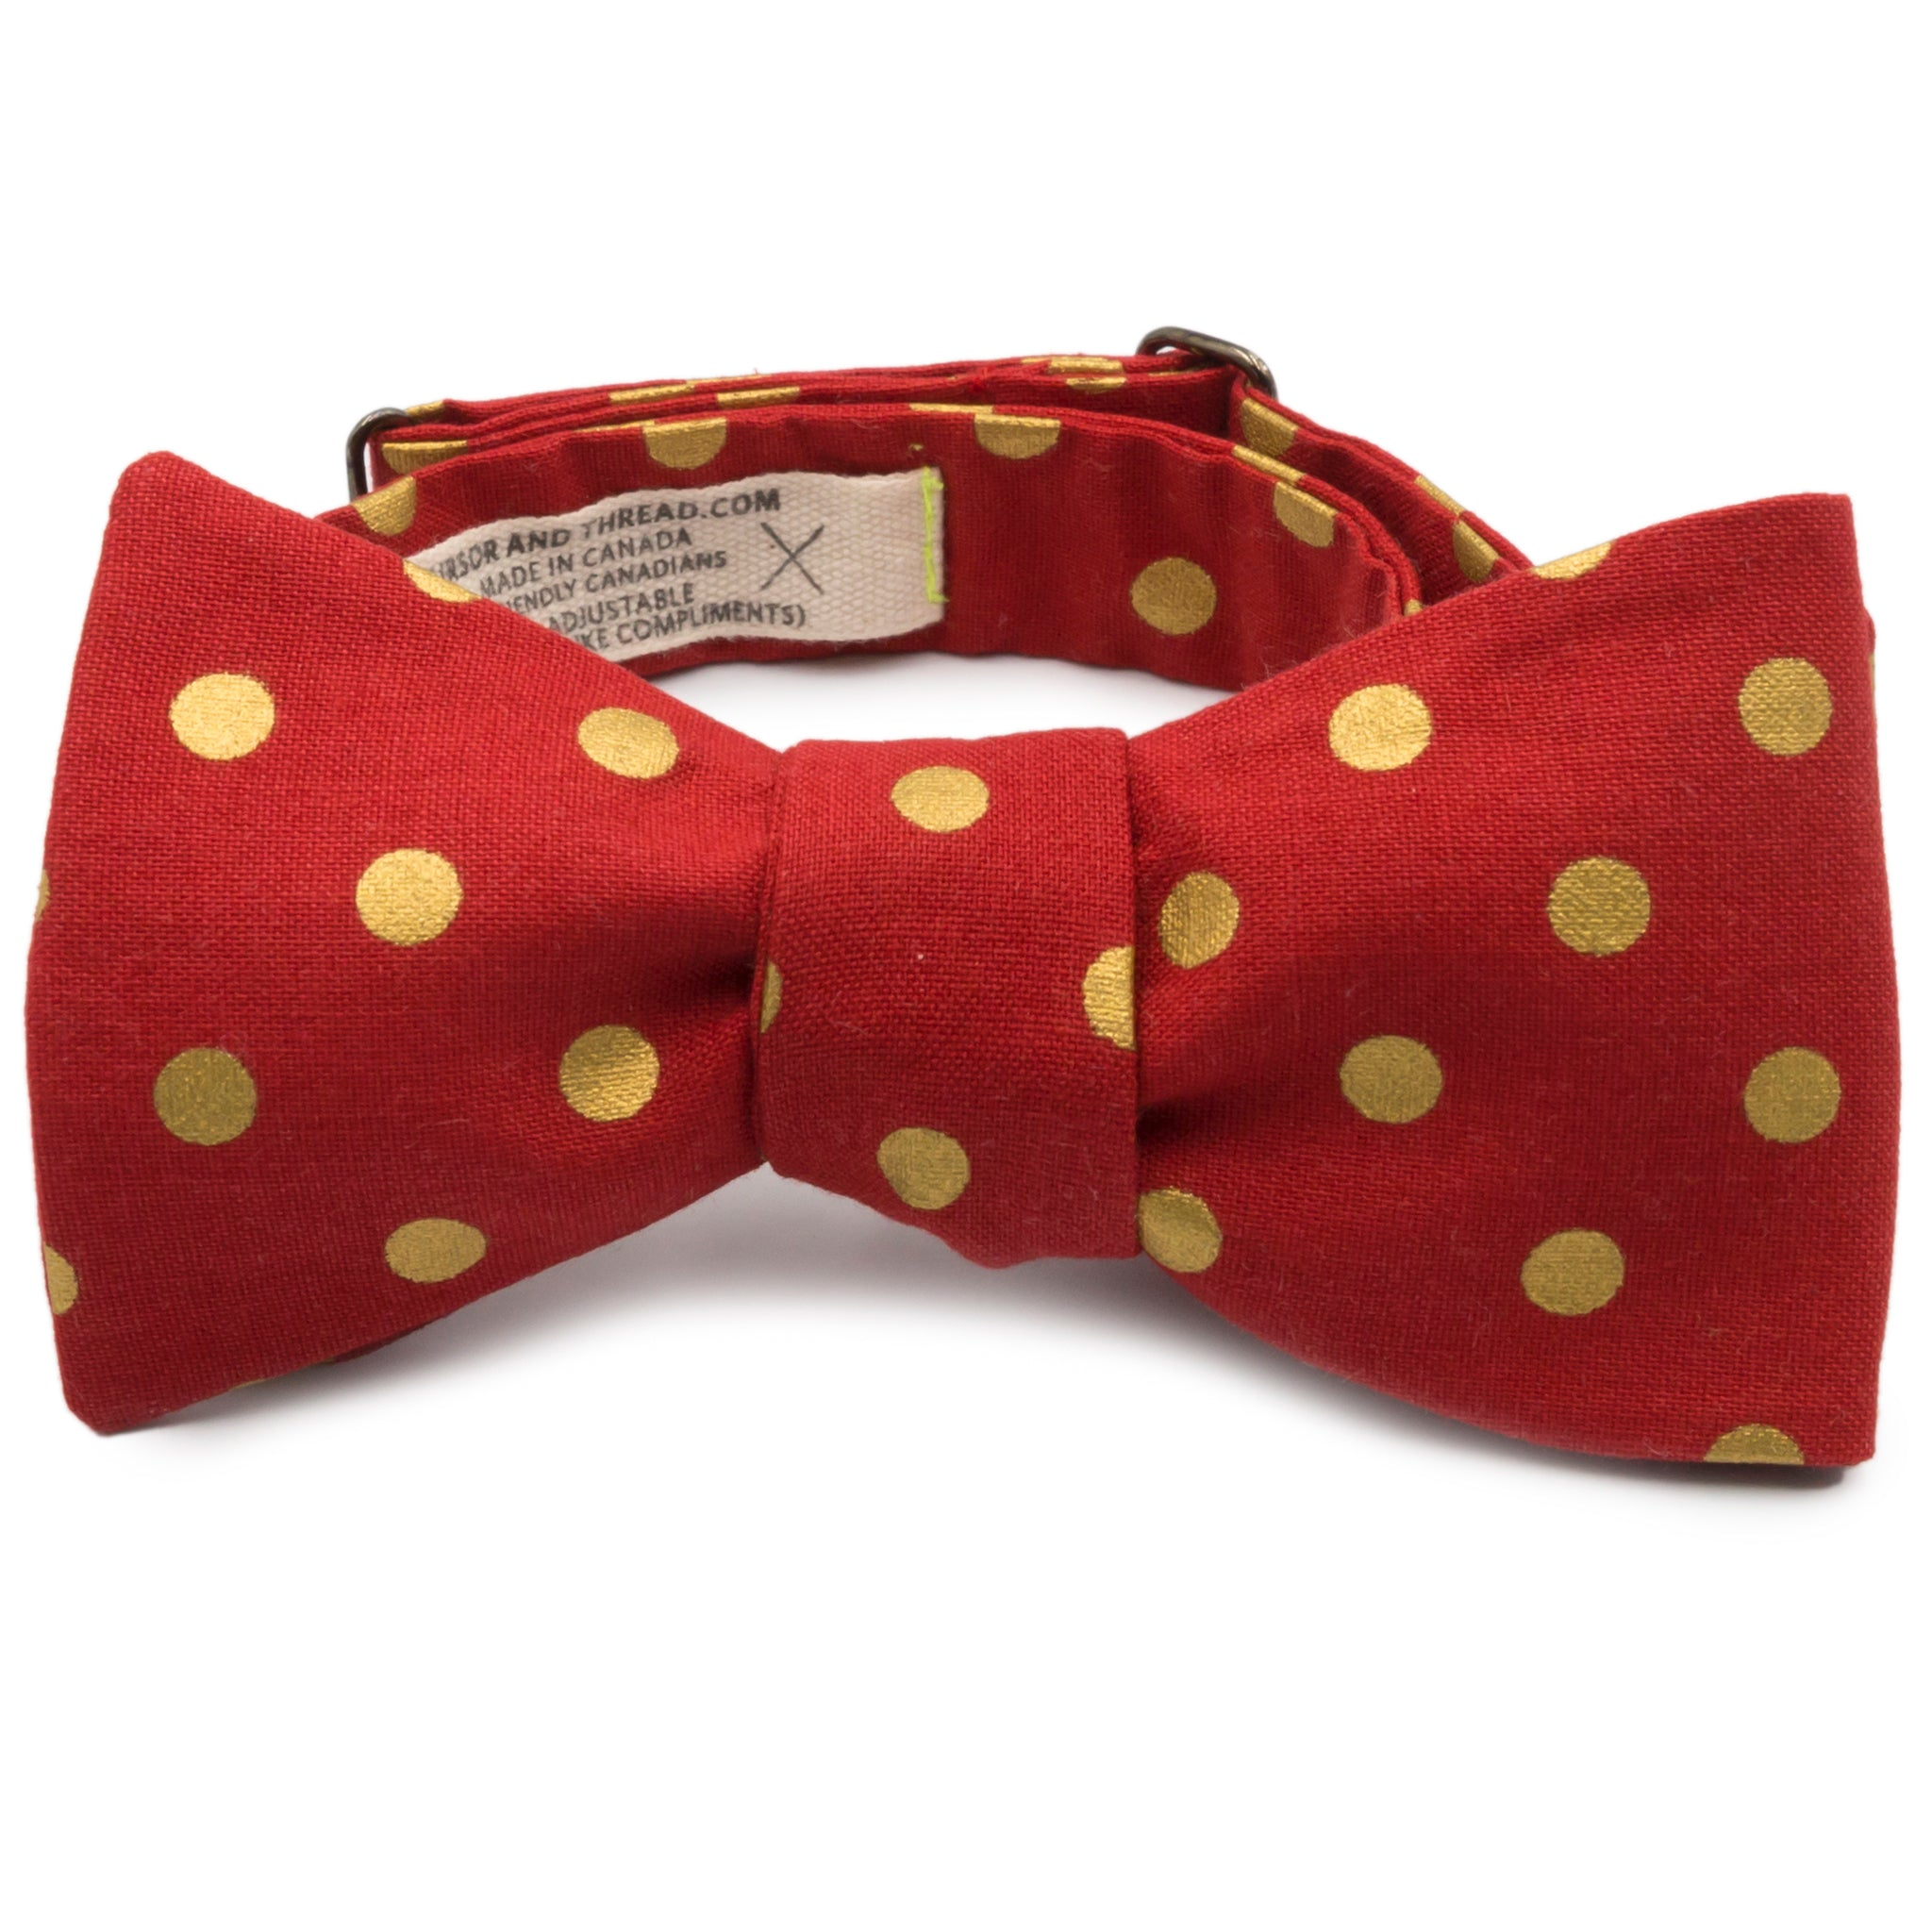 Red Cotton Bow Tie with Metallic Gold Dots Made in Canada